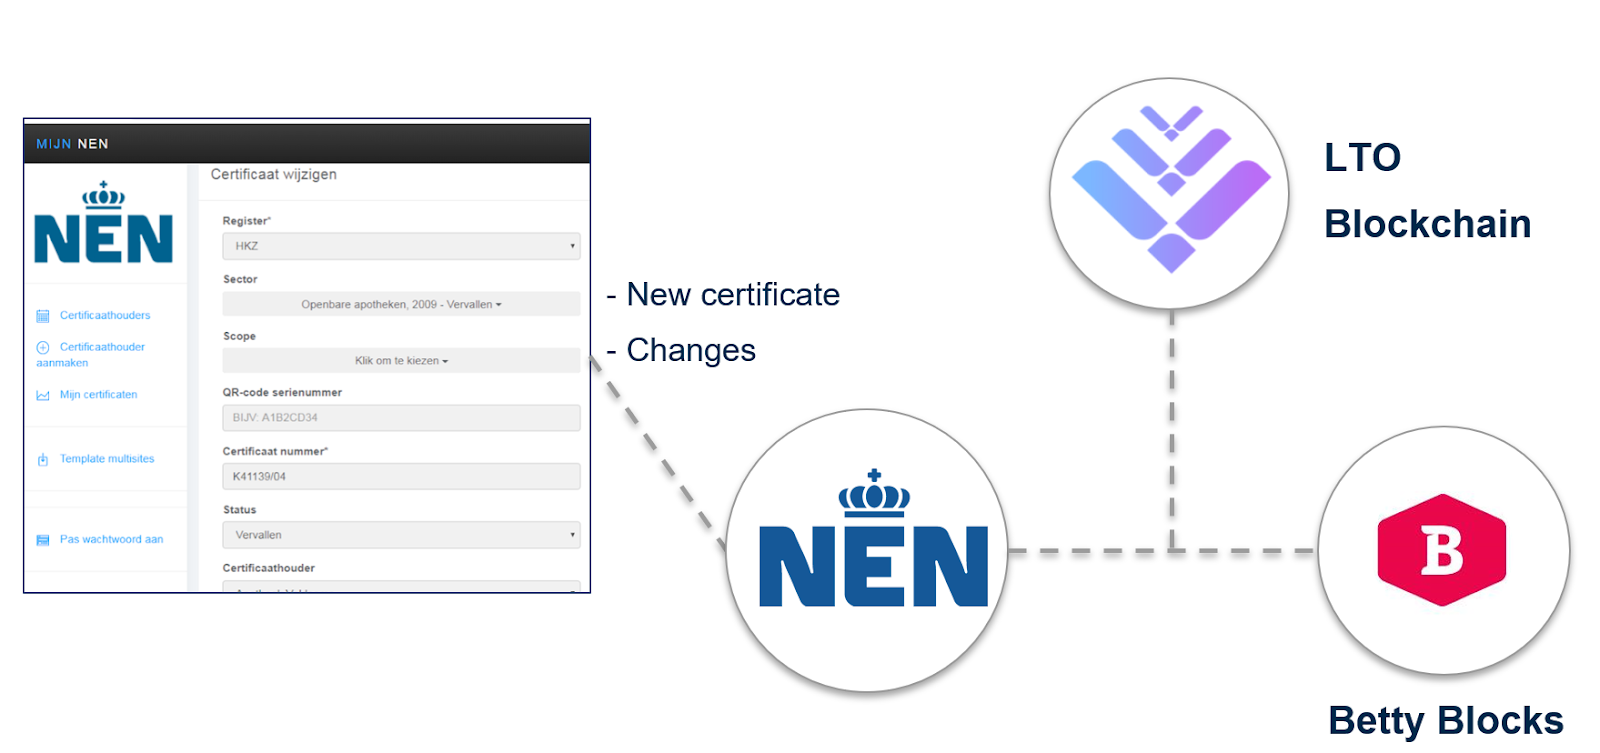 The registration will be reviewed and pending approval by NEN, the certificate is sent to Betty Blocks(NEN certificate database) for acquisition of a unique fingerprint of the transaction anchored onto the LTO blockchain.